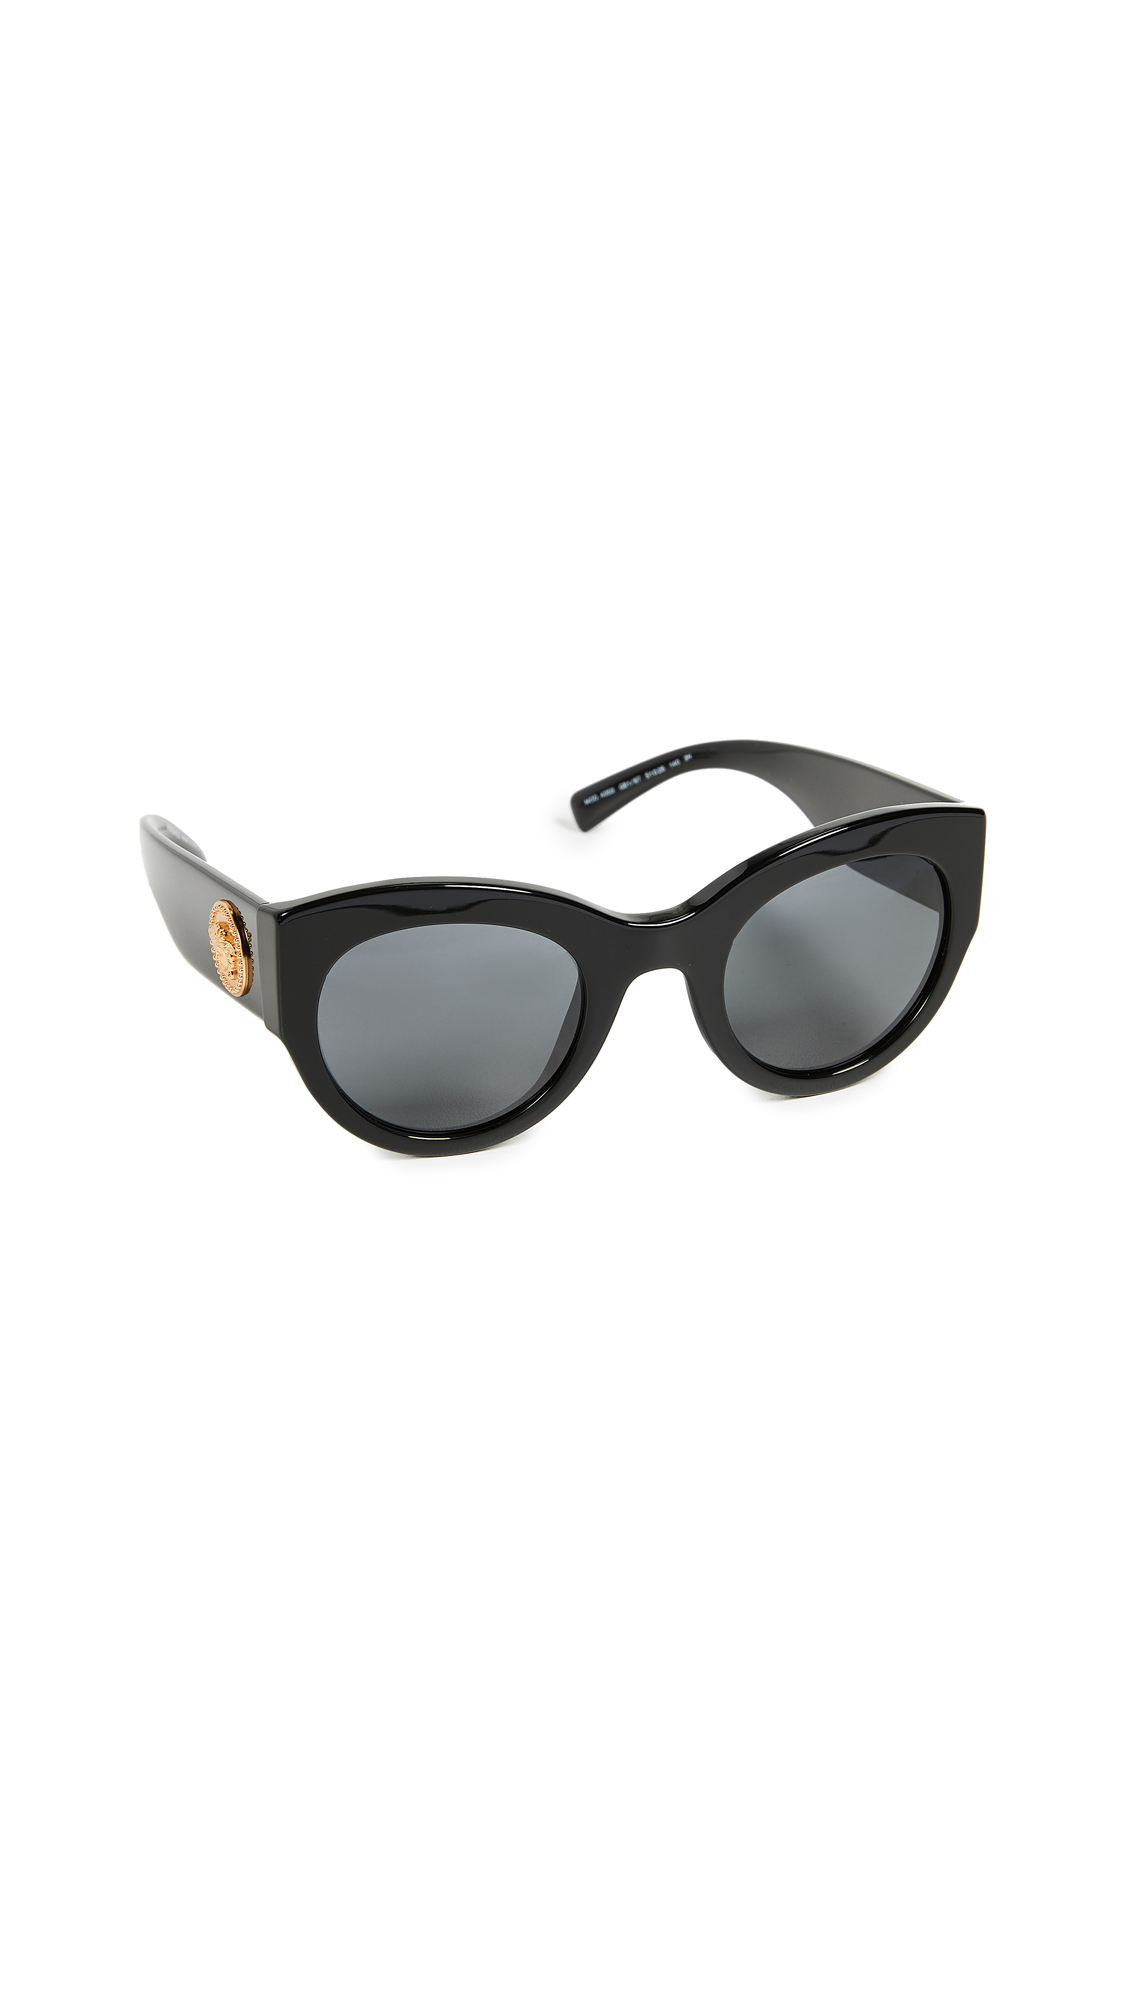 Versace Bold Frame Sunglasses - Black/Grey